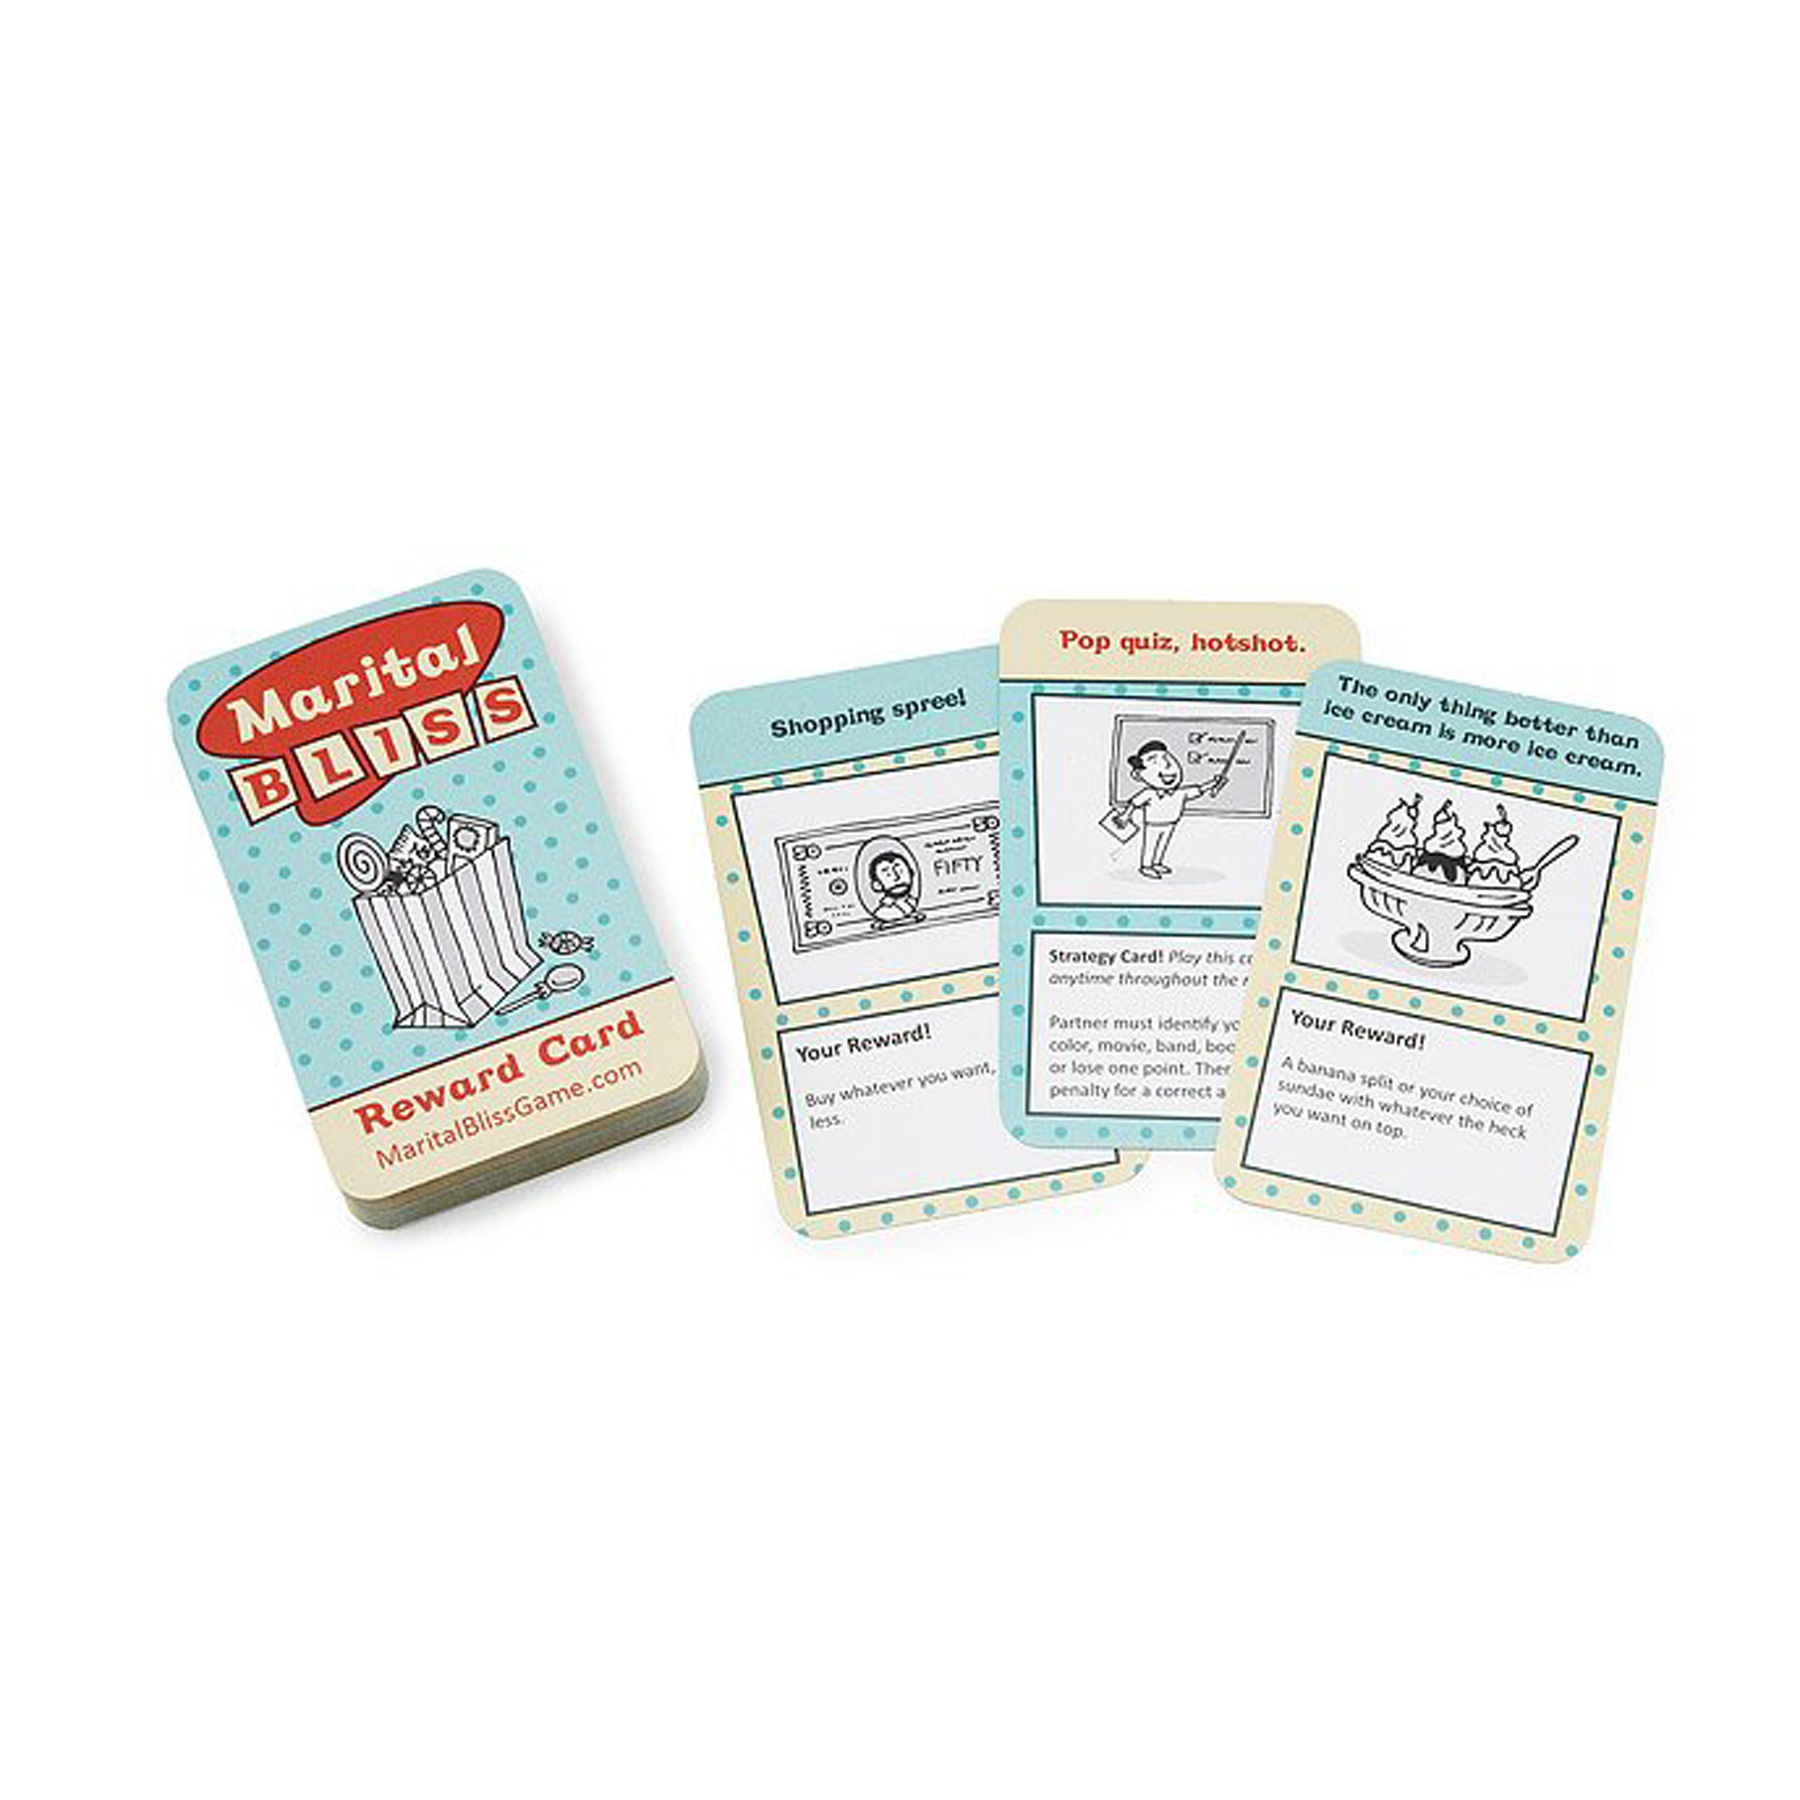 Funny Valentine's Day Gifts: Marital Bliss Game uncommon goods